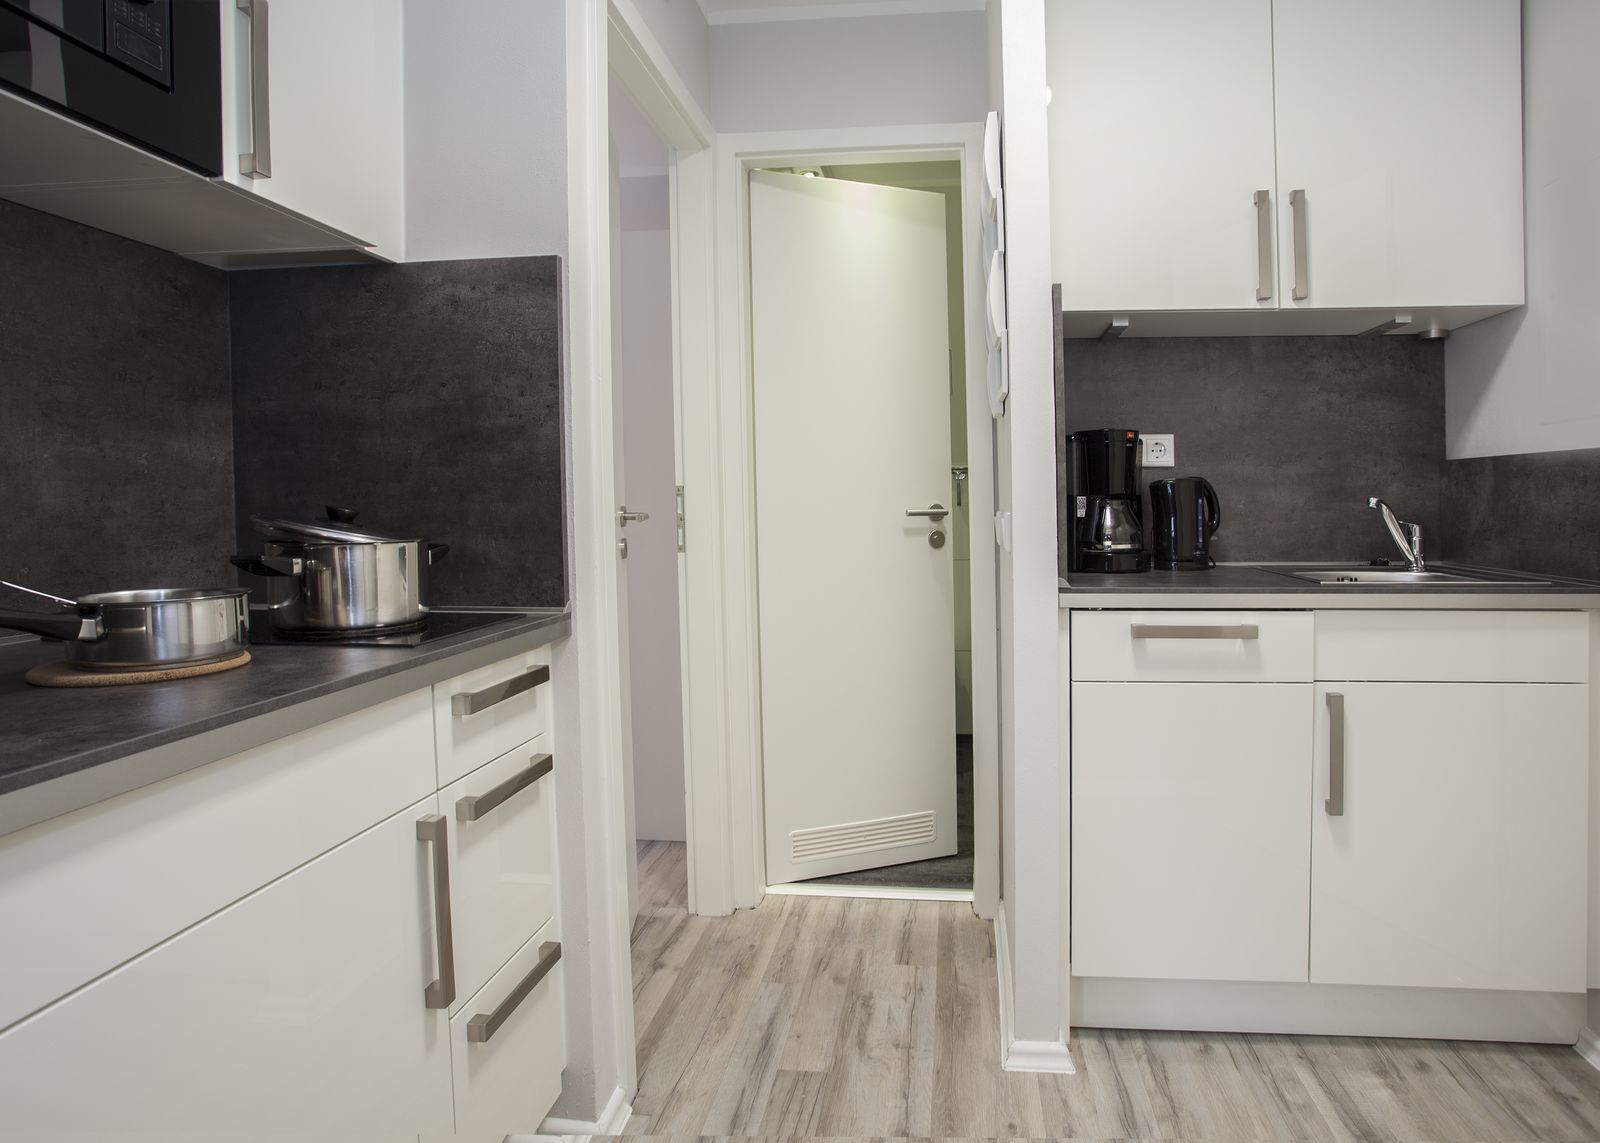 Apartment - Comfort 4 Persons